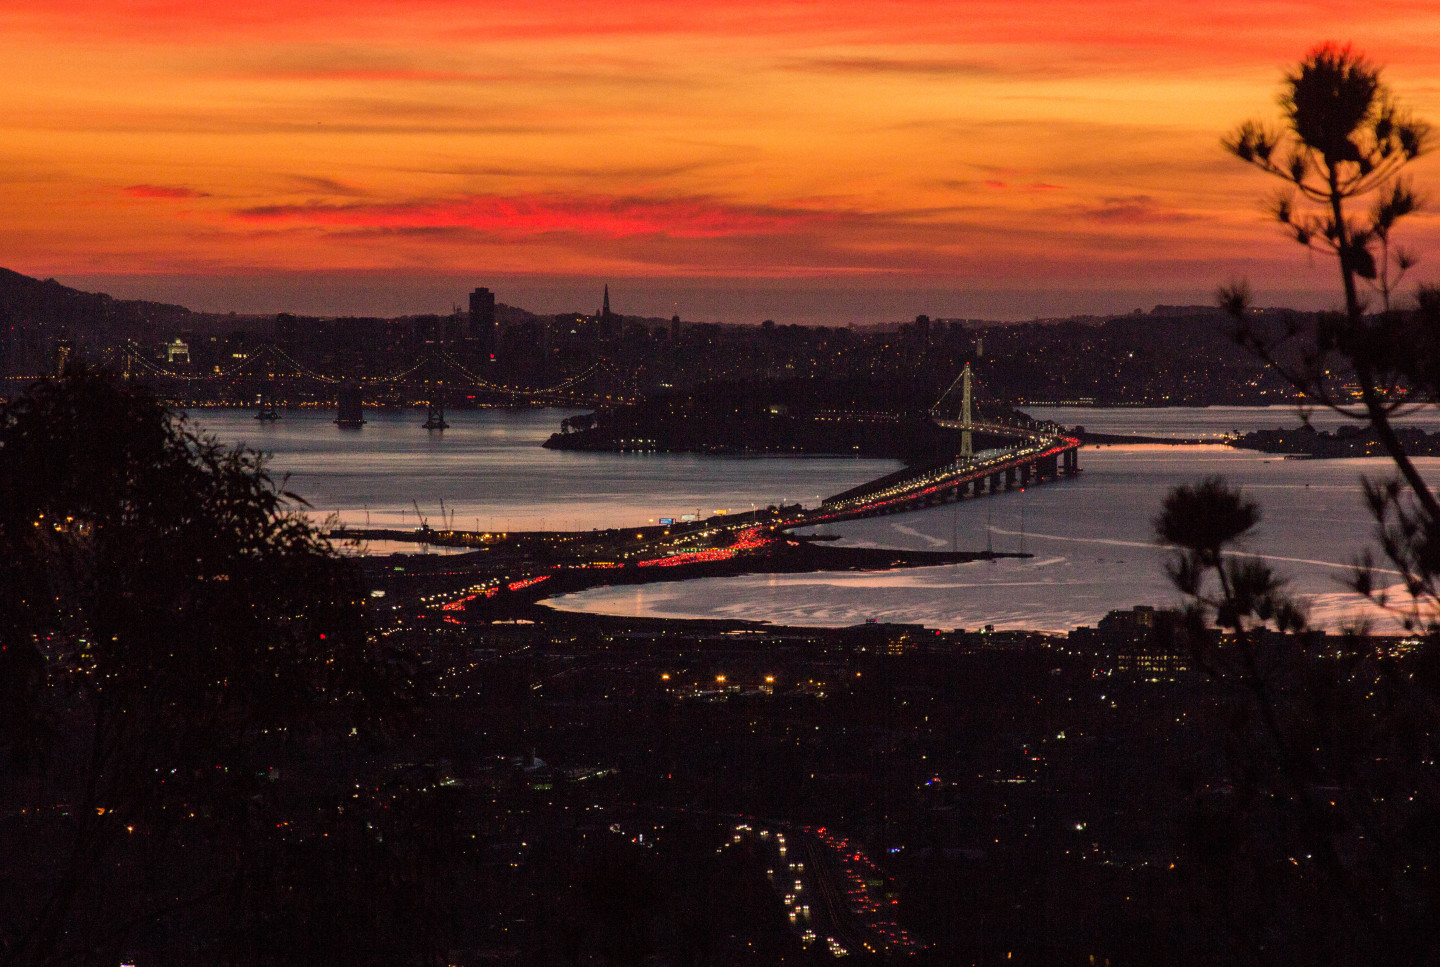 This February sunset would have happened an hour later if Daylight Saving Time had been in effect.  Dan Brekke/KQED